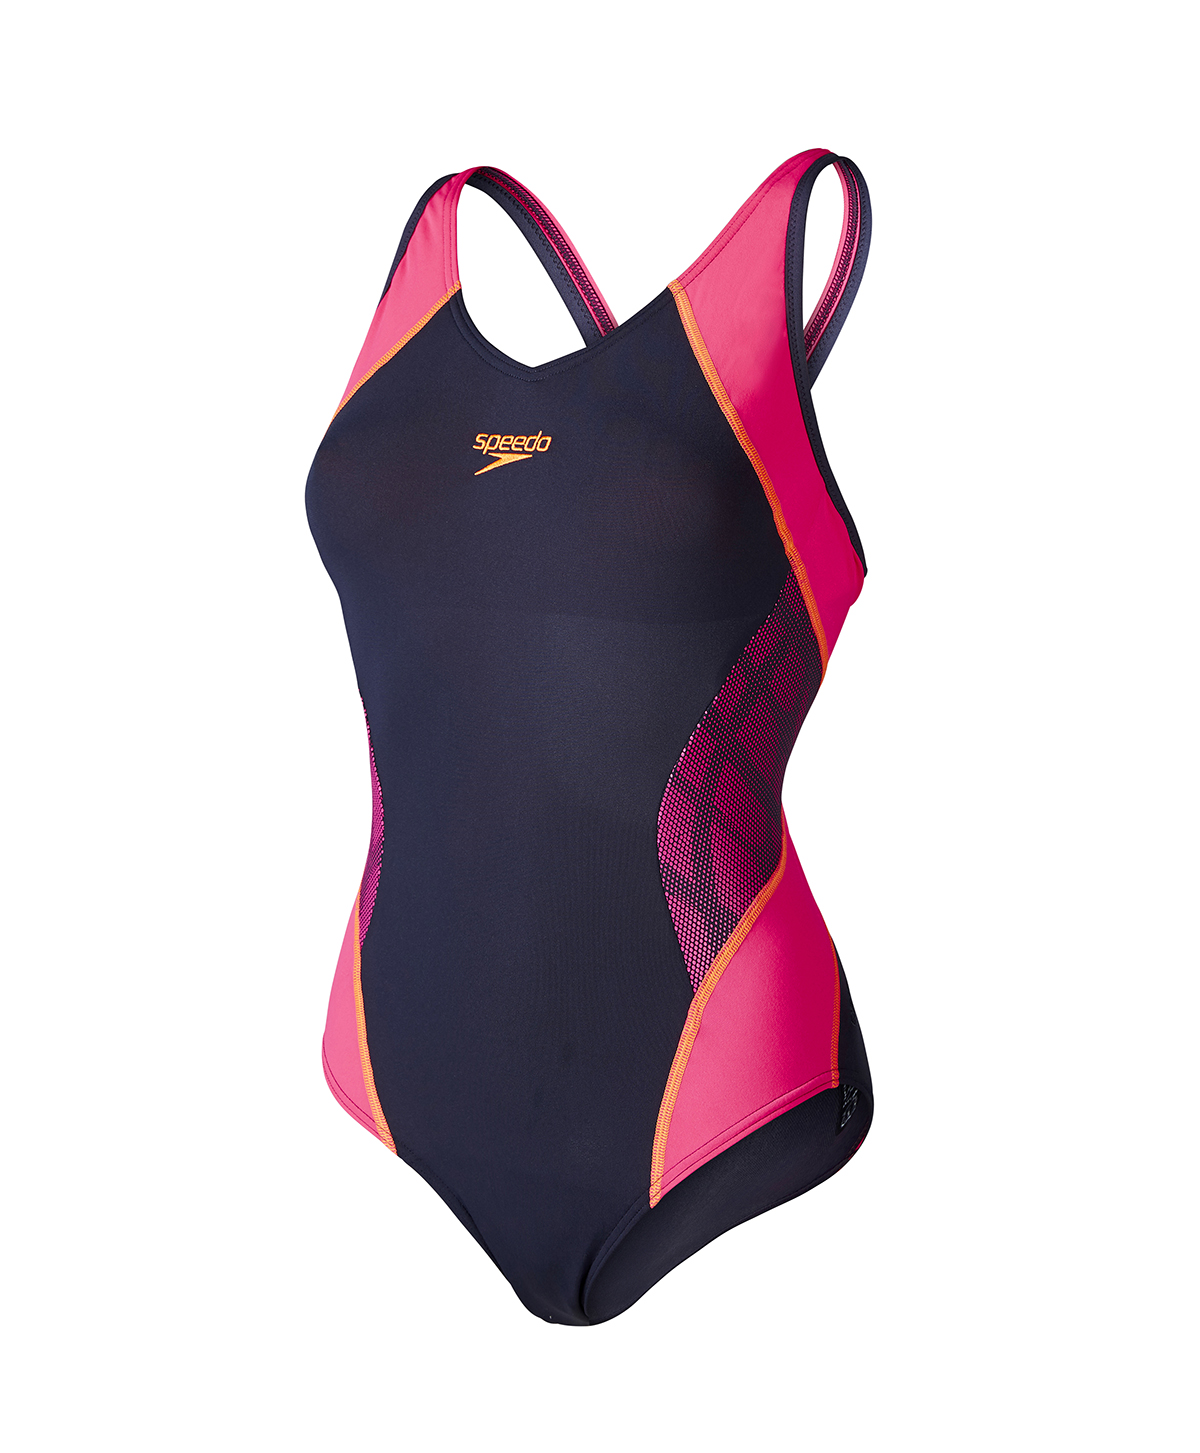 Speedo Fit Ladies Splice Muscleback - More colour options